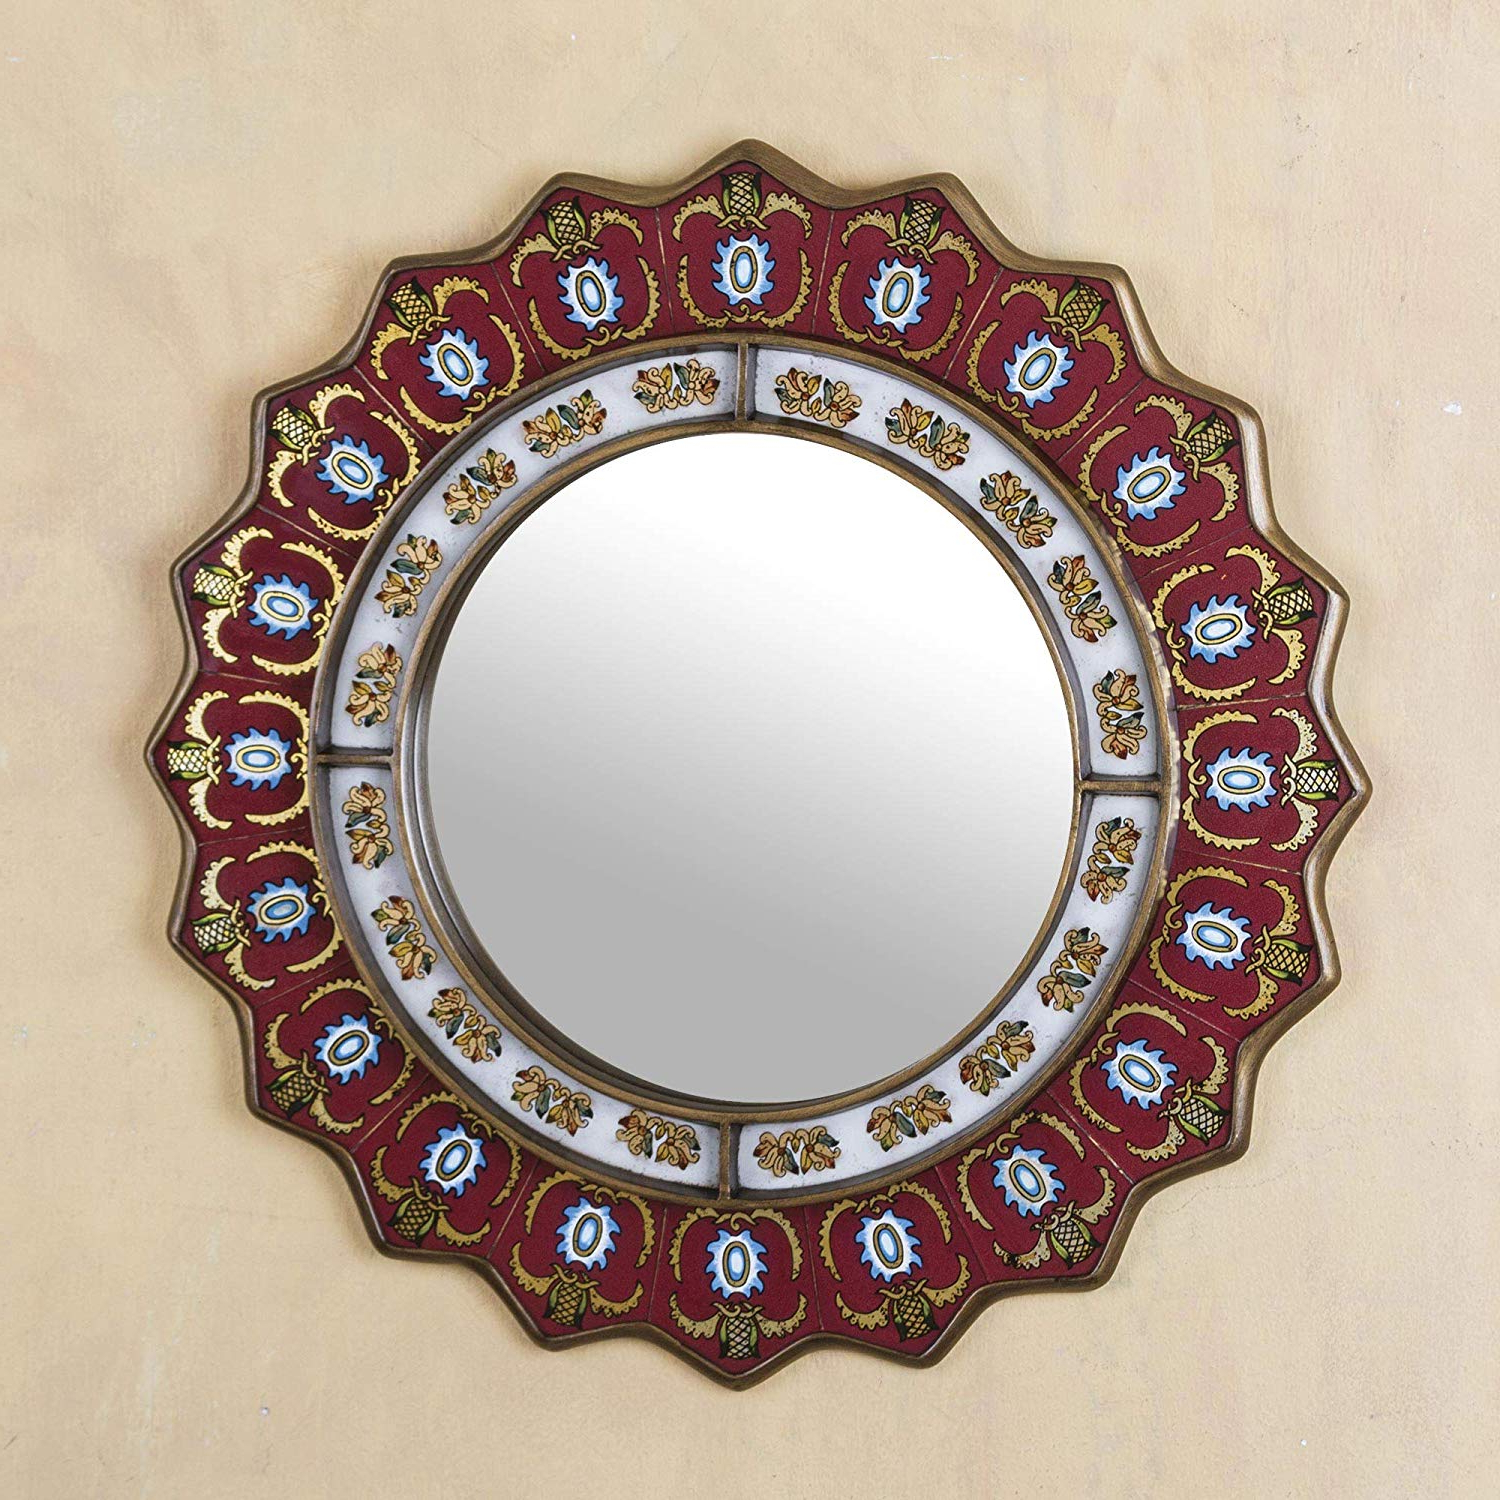 Well Known Star Wall Mirrors Regarding Novica Mi0006 Red Reverse Painted Glass Wood Framed Decorative Star Wall  Mirror From Peru 'ruby Medallion' (Large) (View 16 of 20)